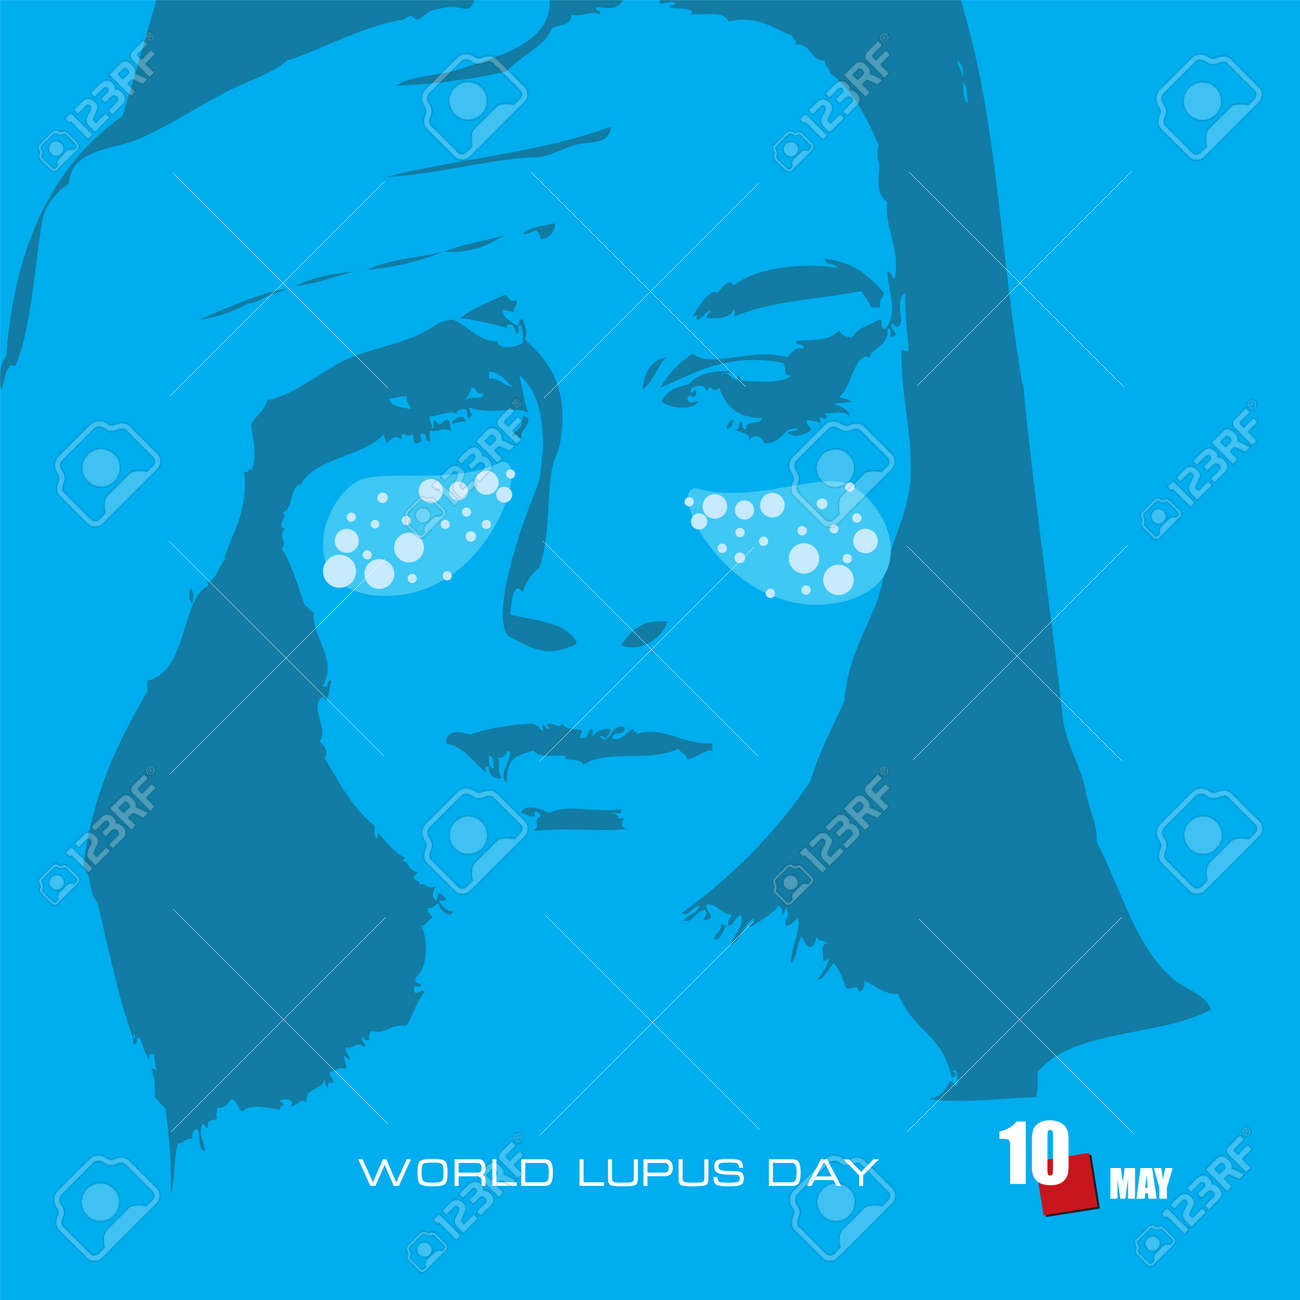 The calendar event is celebrated in may - World Lupus Day - 168987673